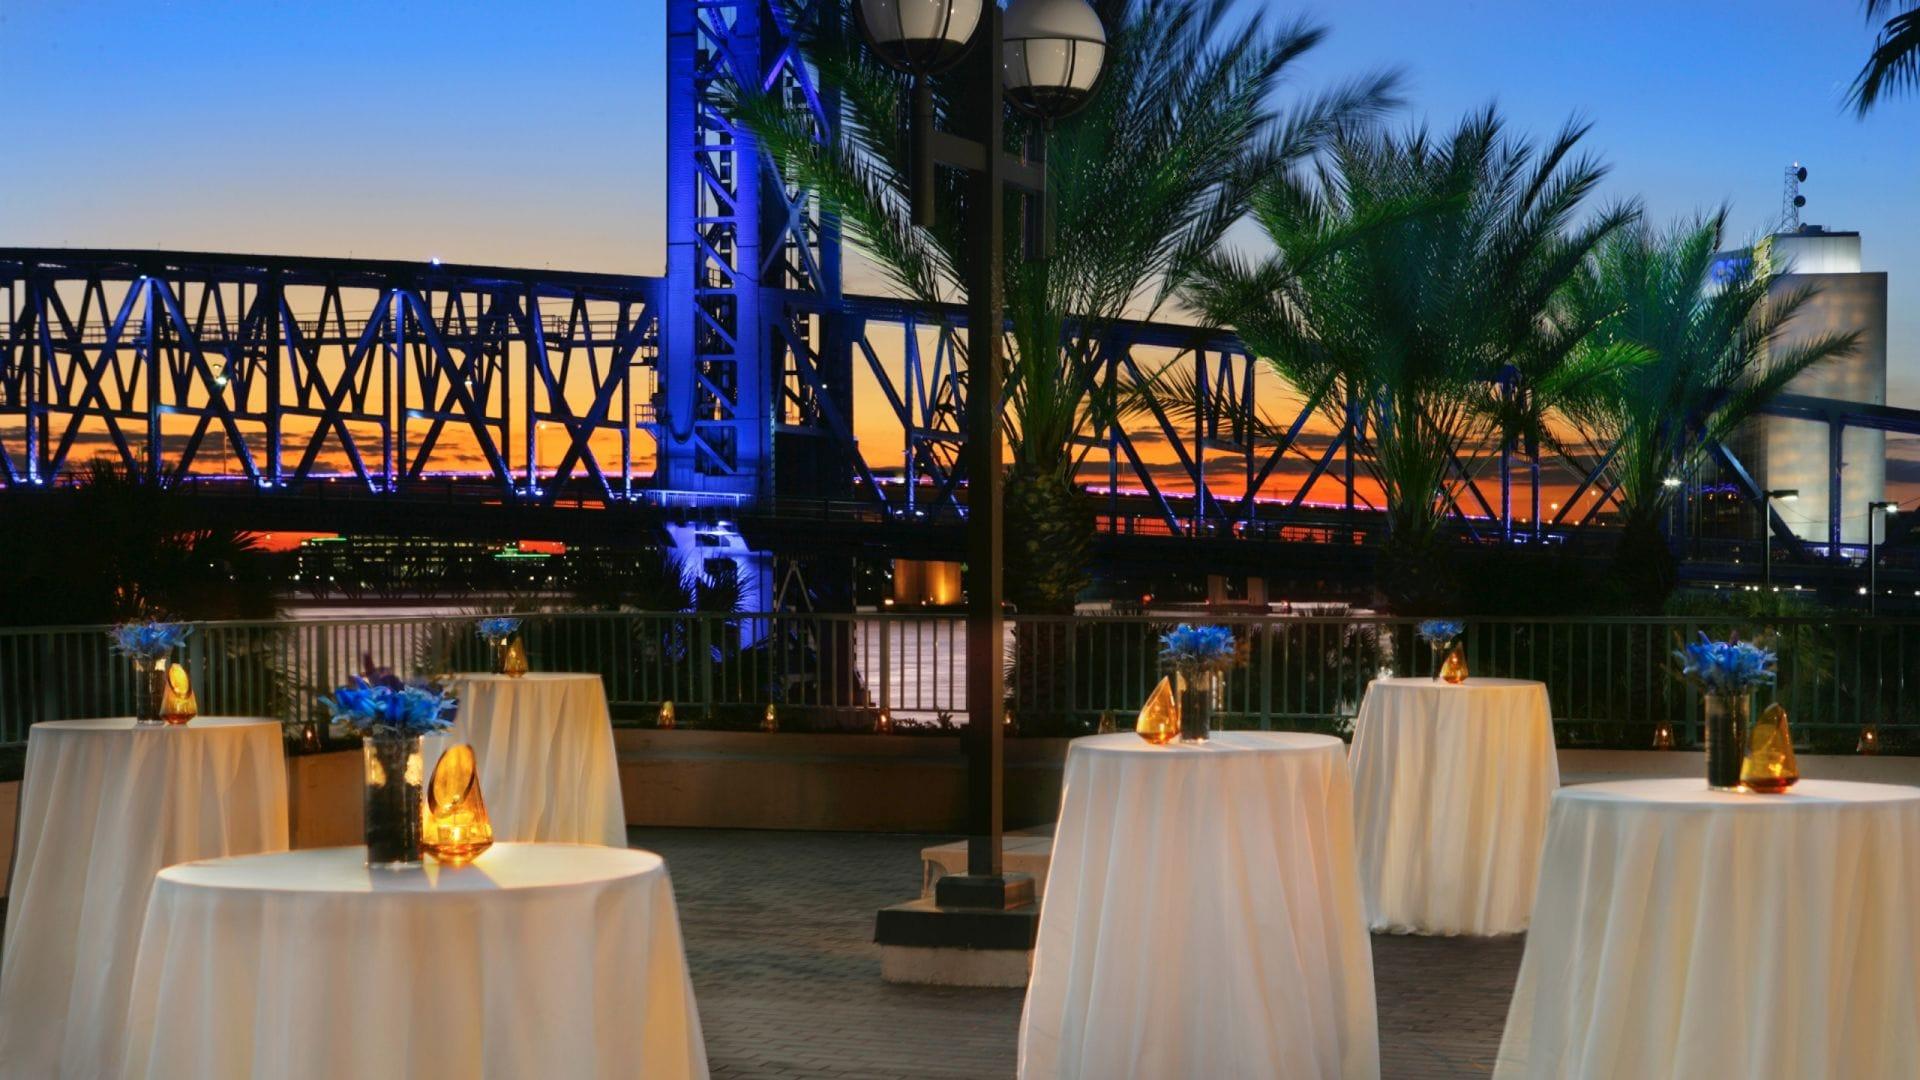 Hyatt Regency Jacksonville Riverfront Outdoor Event